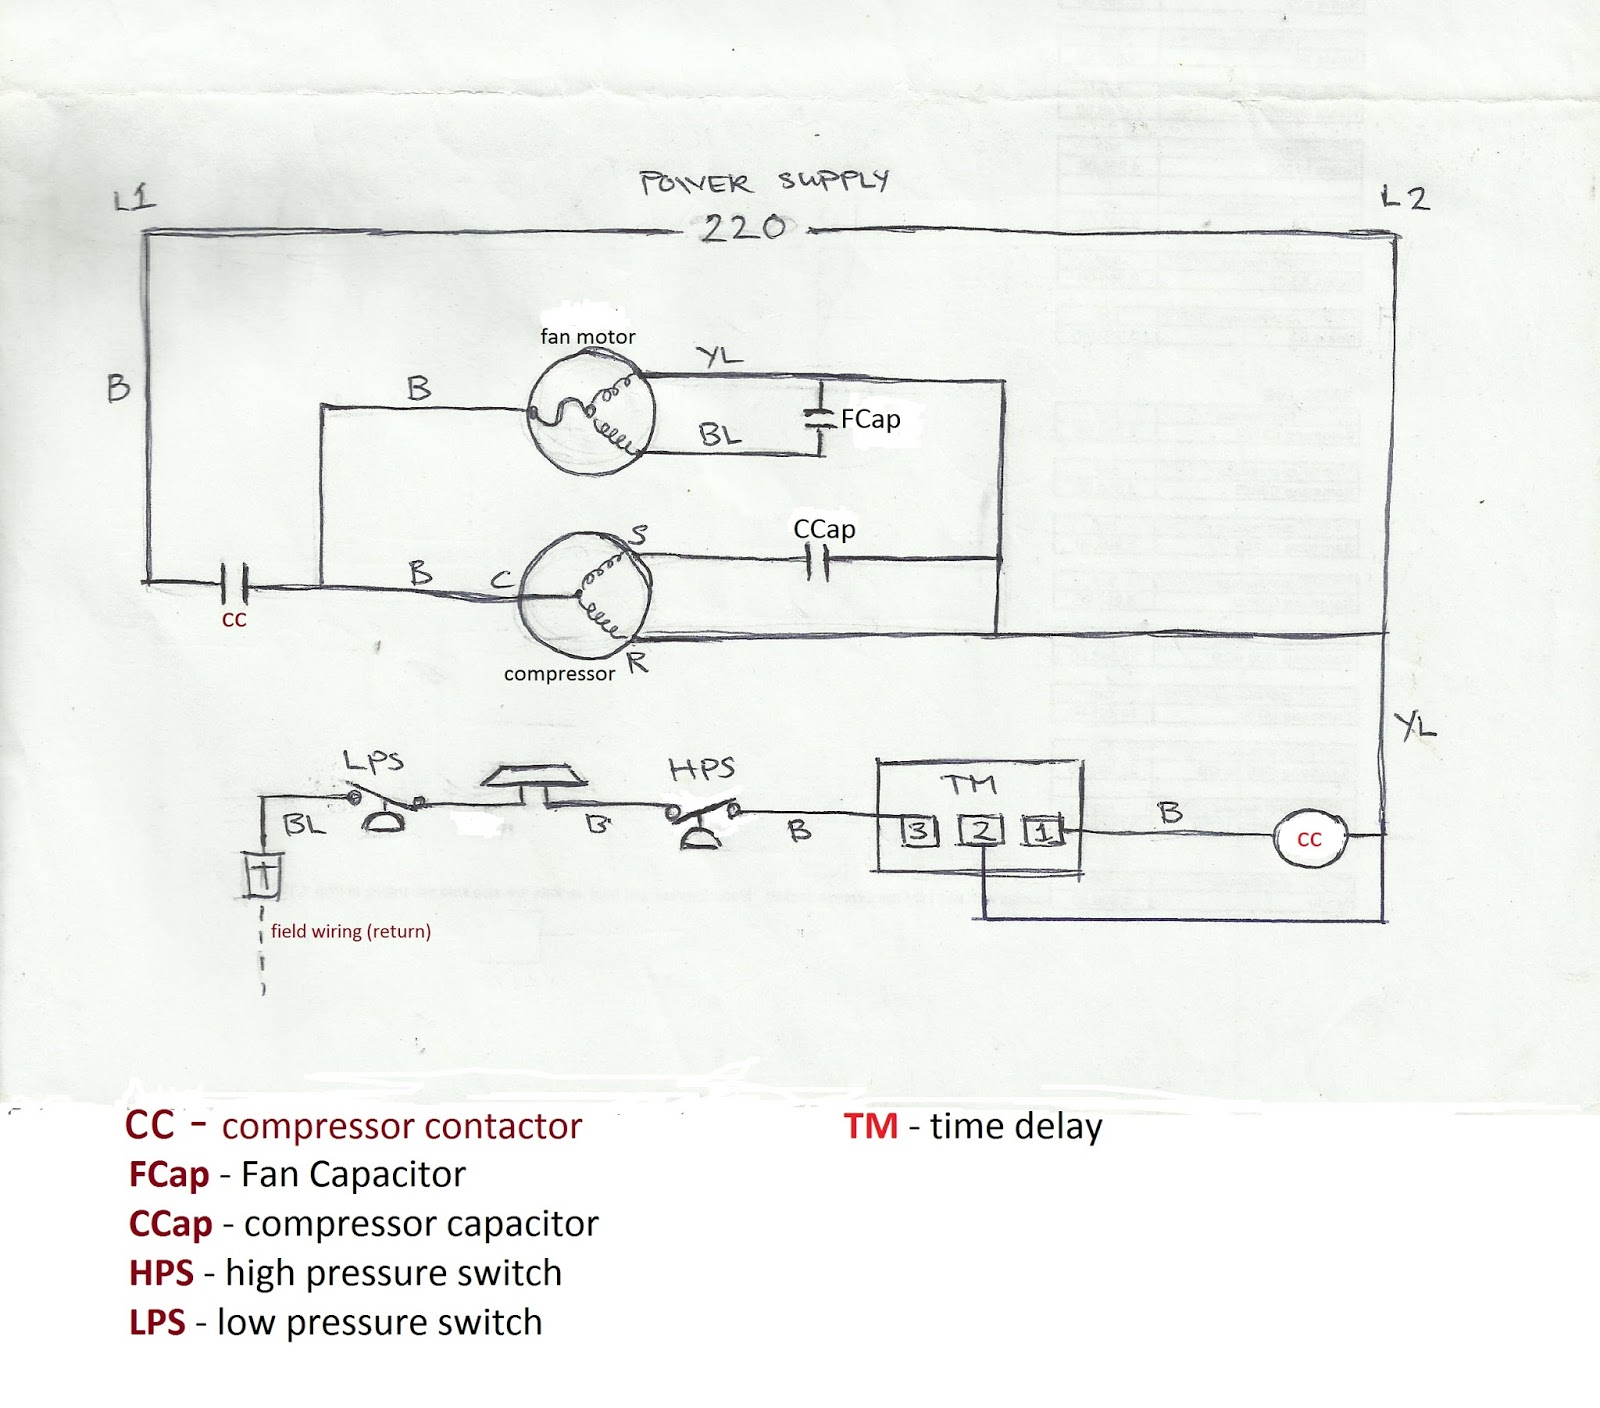 a refrigeration and air conditioning repair carrier 3tr aircon time delay transfer switch wiring diagram at gsmx.co